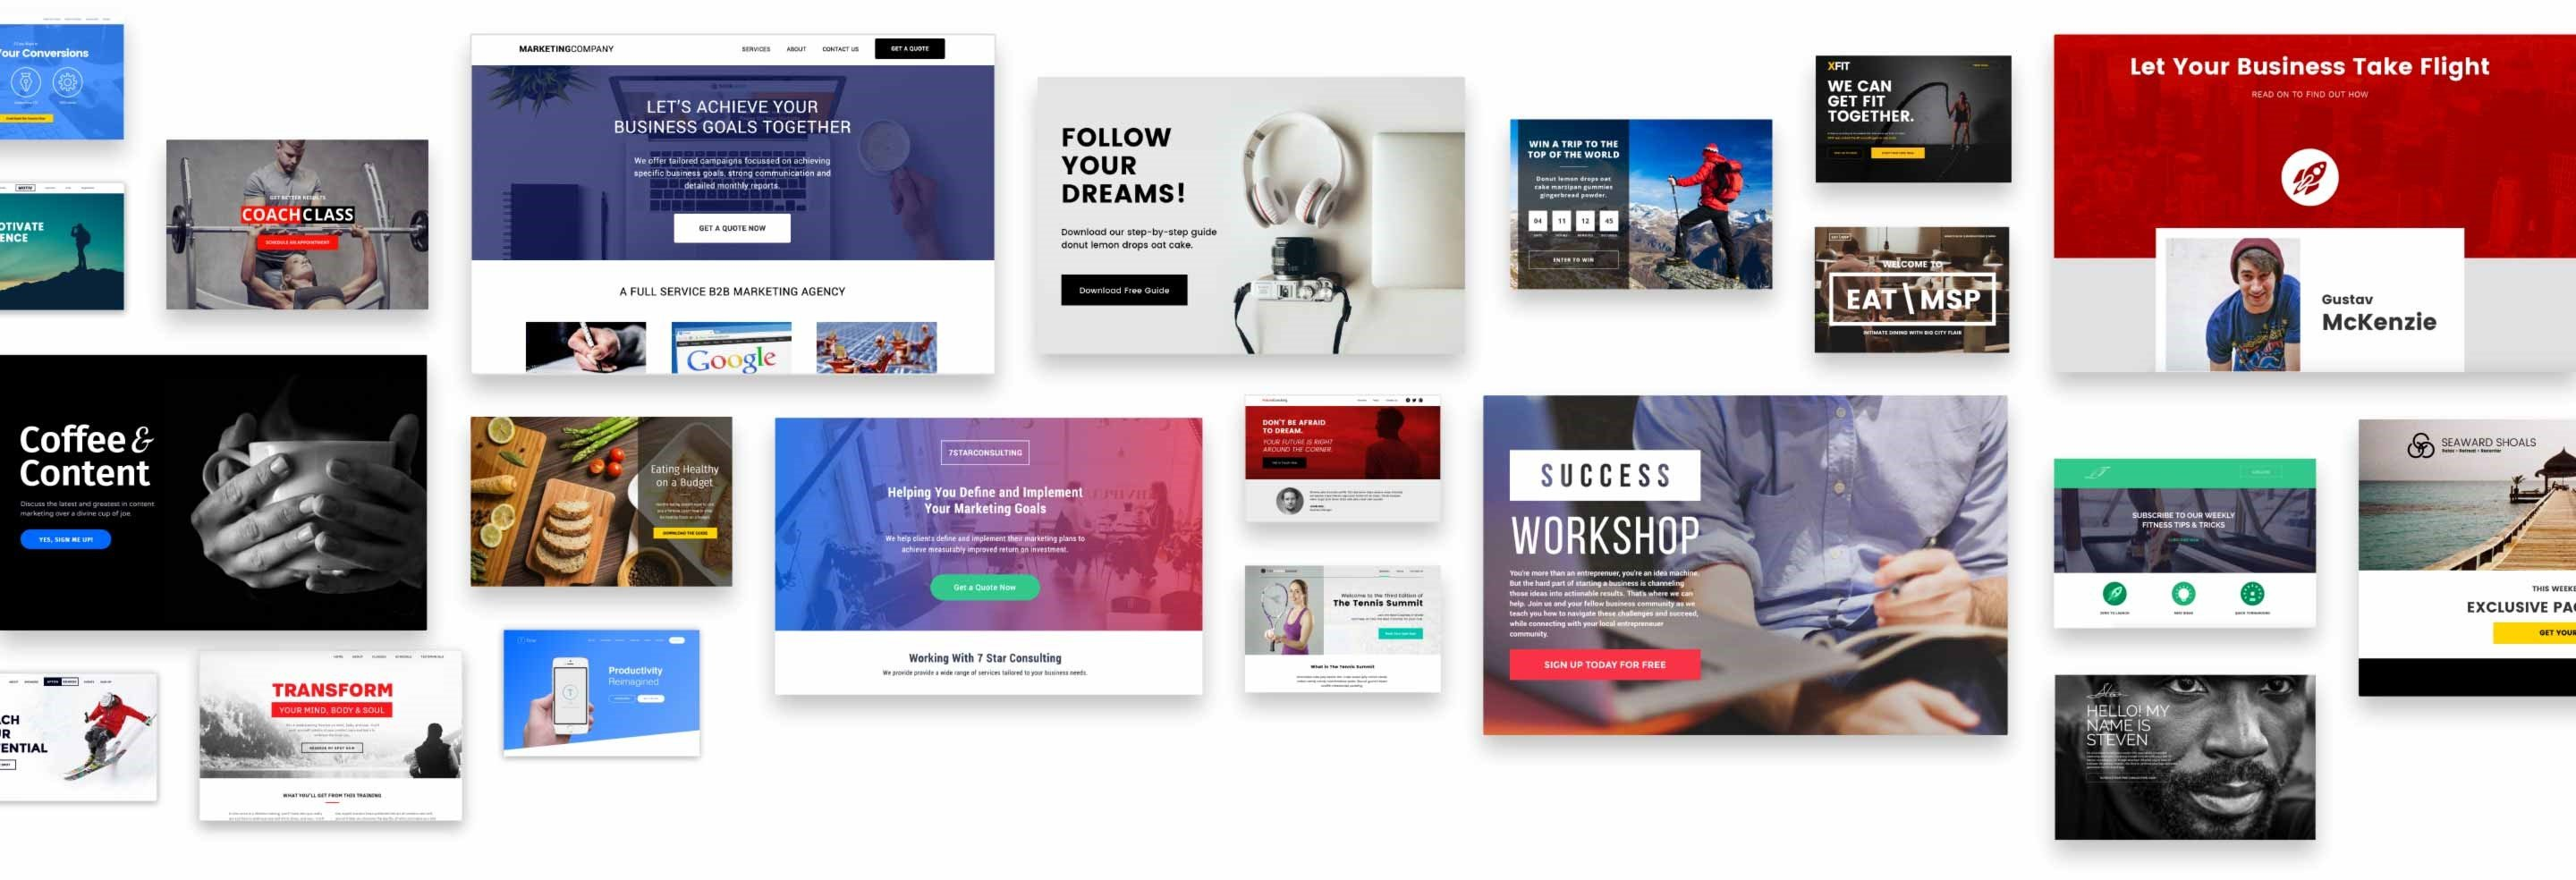 landing-pages-crowdfaction